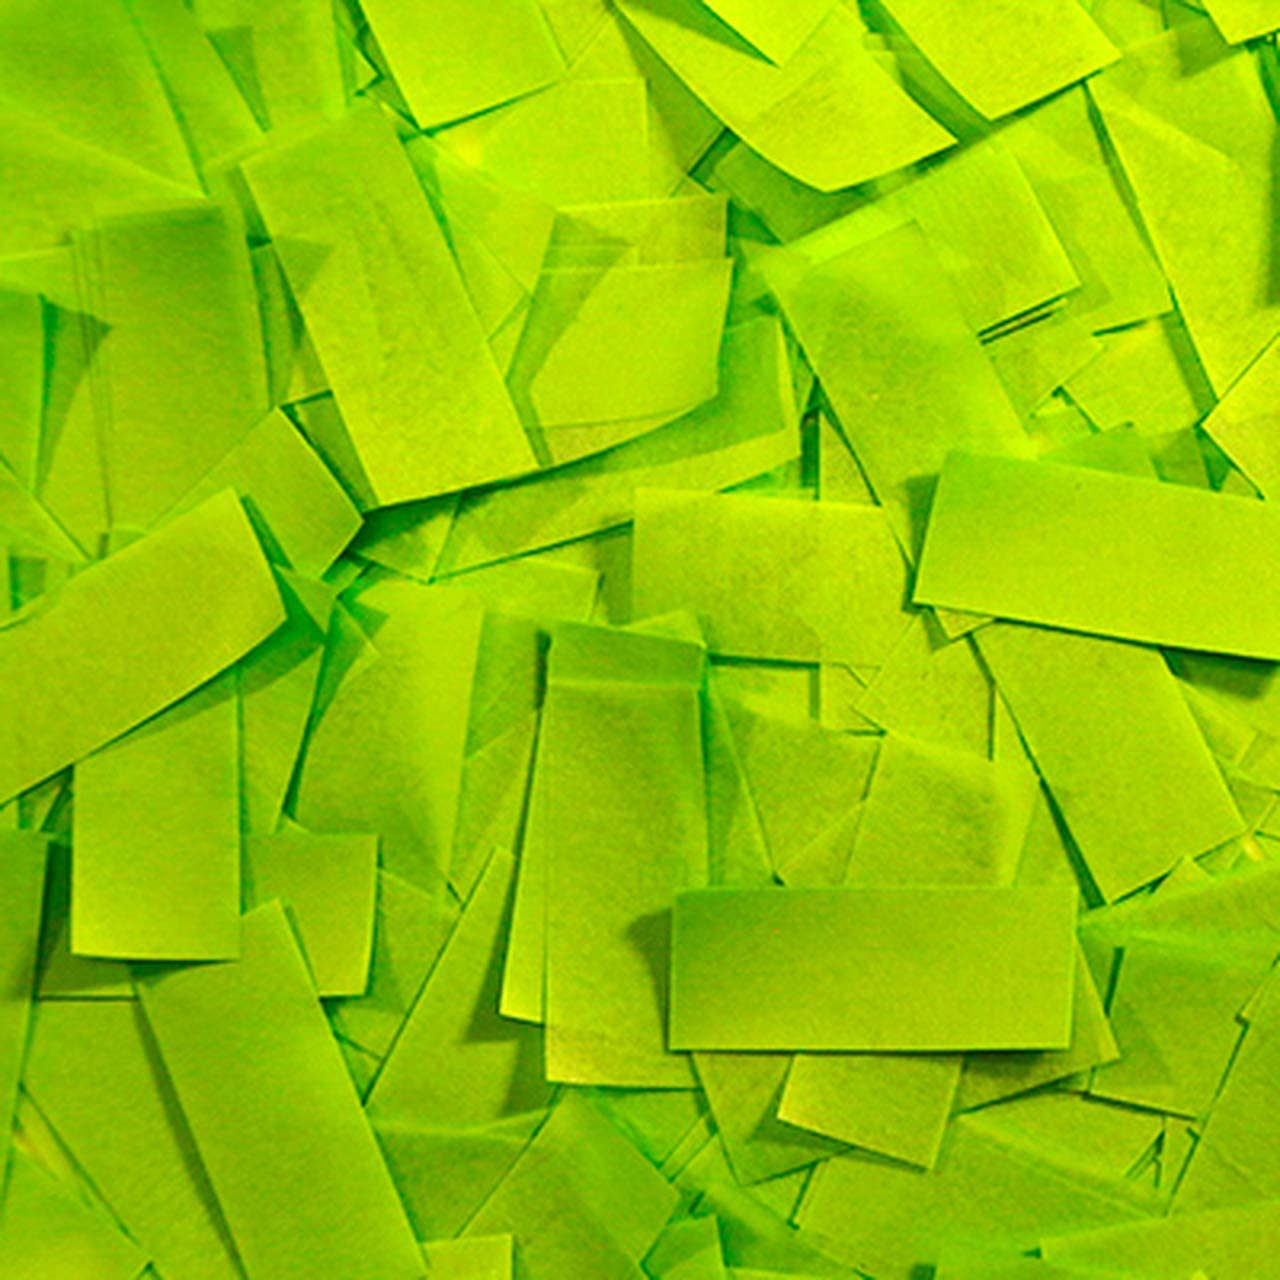 Ultimate Confetti Light Green Tissue Confetti-Biodegrabable-for Parties-Sporting Events-Parties-Easter-Parades-Productions-Baby Showers!